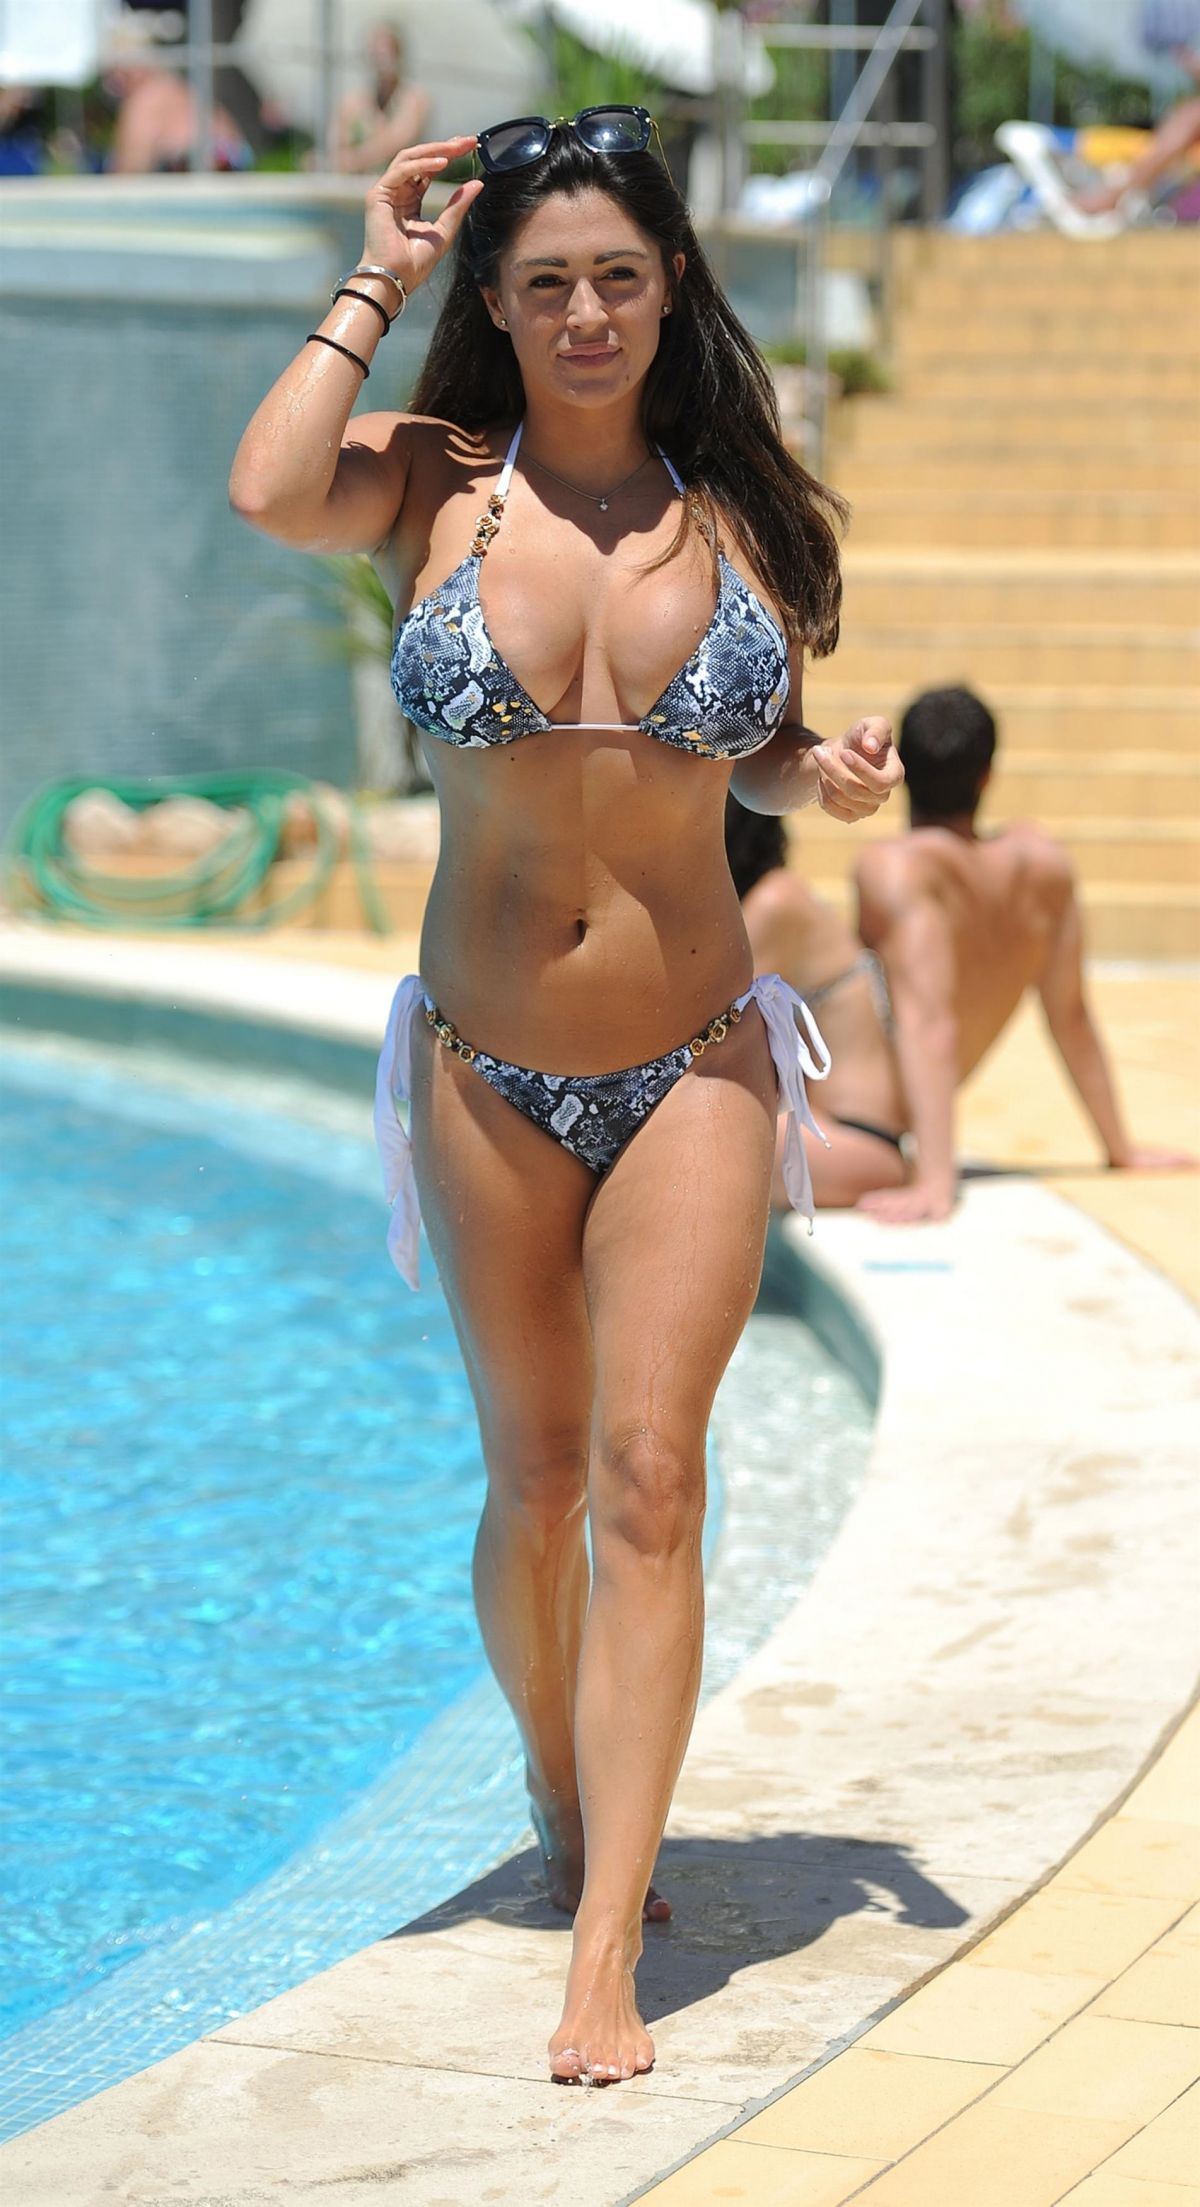 Casey Batchelor in Bikini on the pool in Cyprus Pic 8 of 35